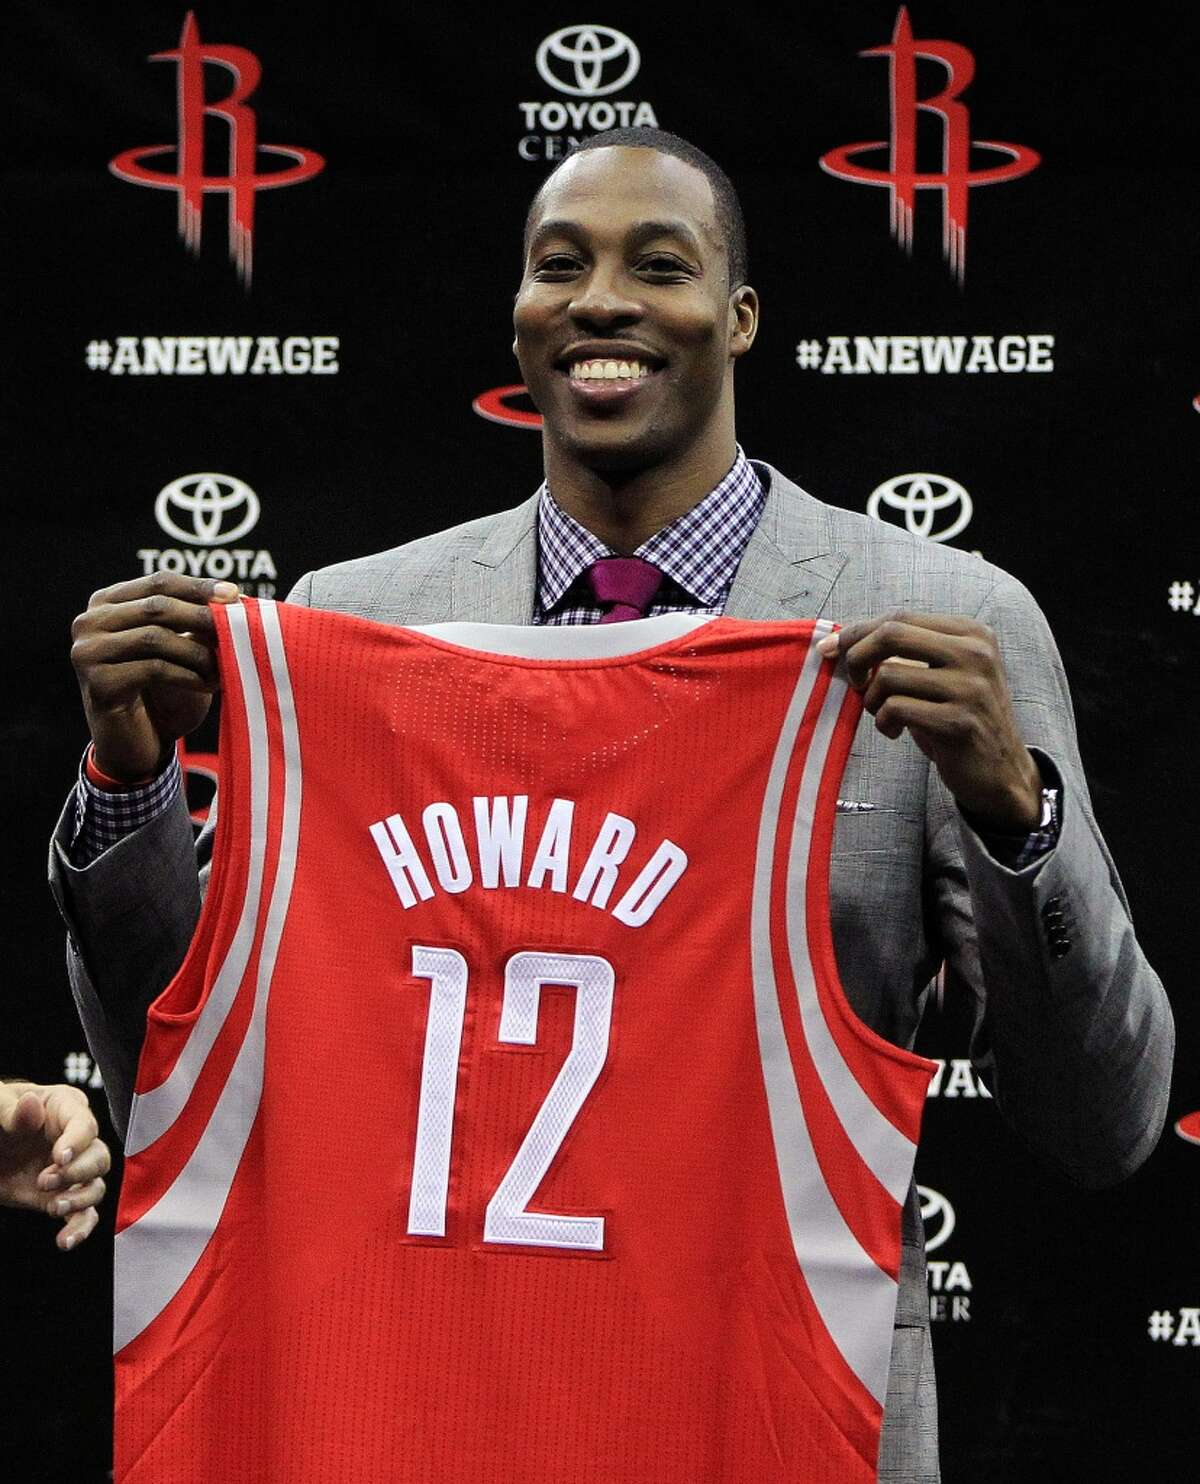 Dwight Howard decided to join the Rockets during the 2013 free agency period.